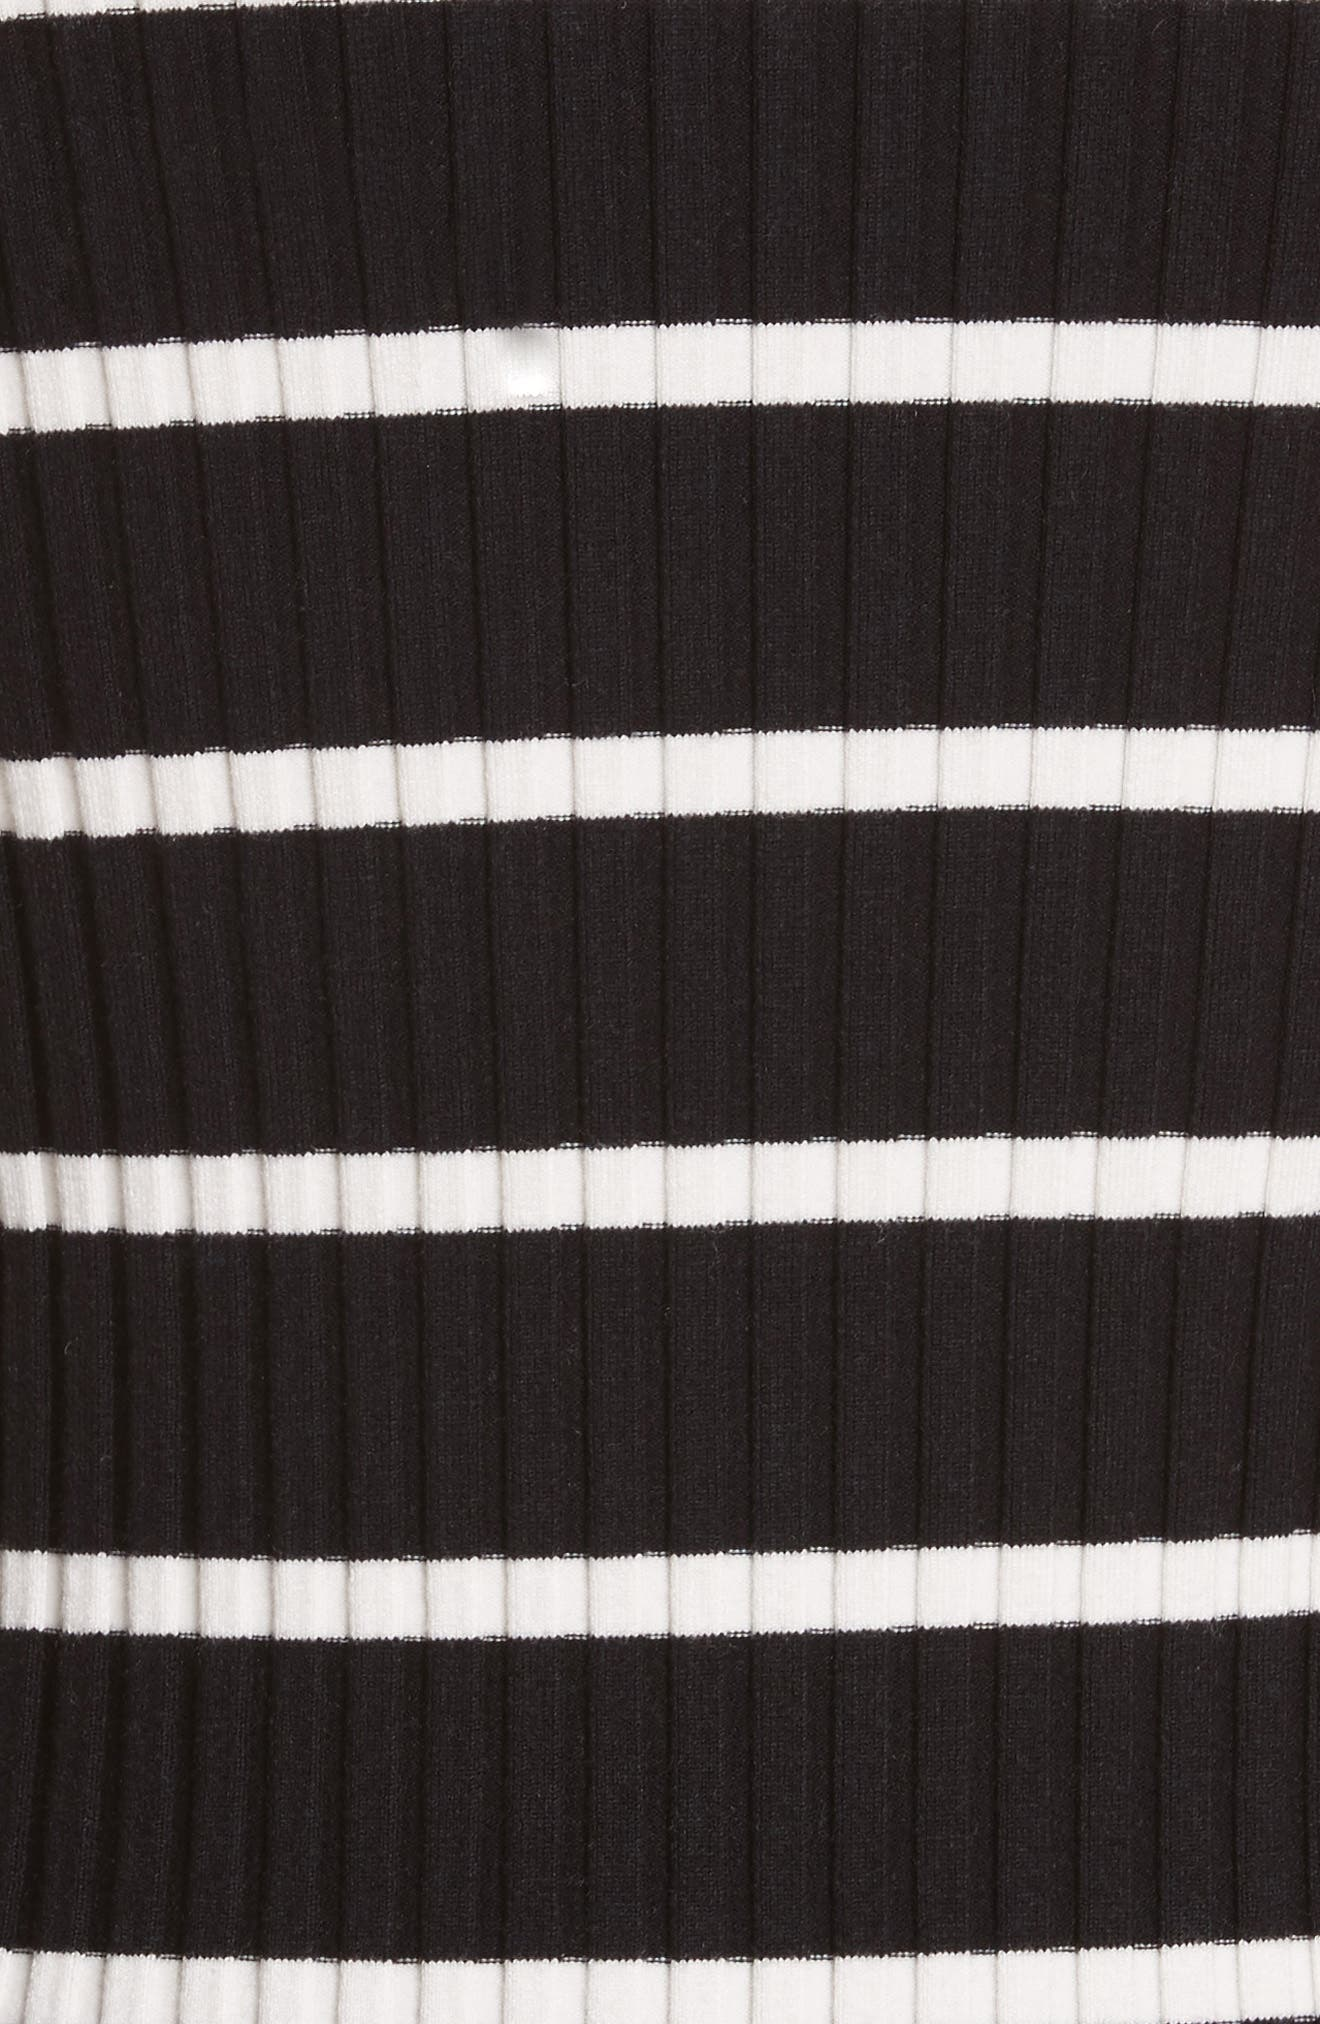 Stripe Knit Turtleneck Dress,                             Alternate thumbnail 6, color,                             004